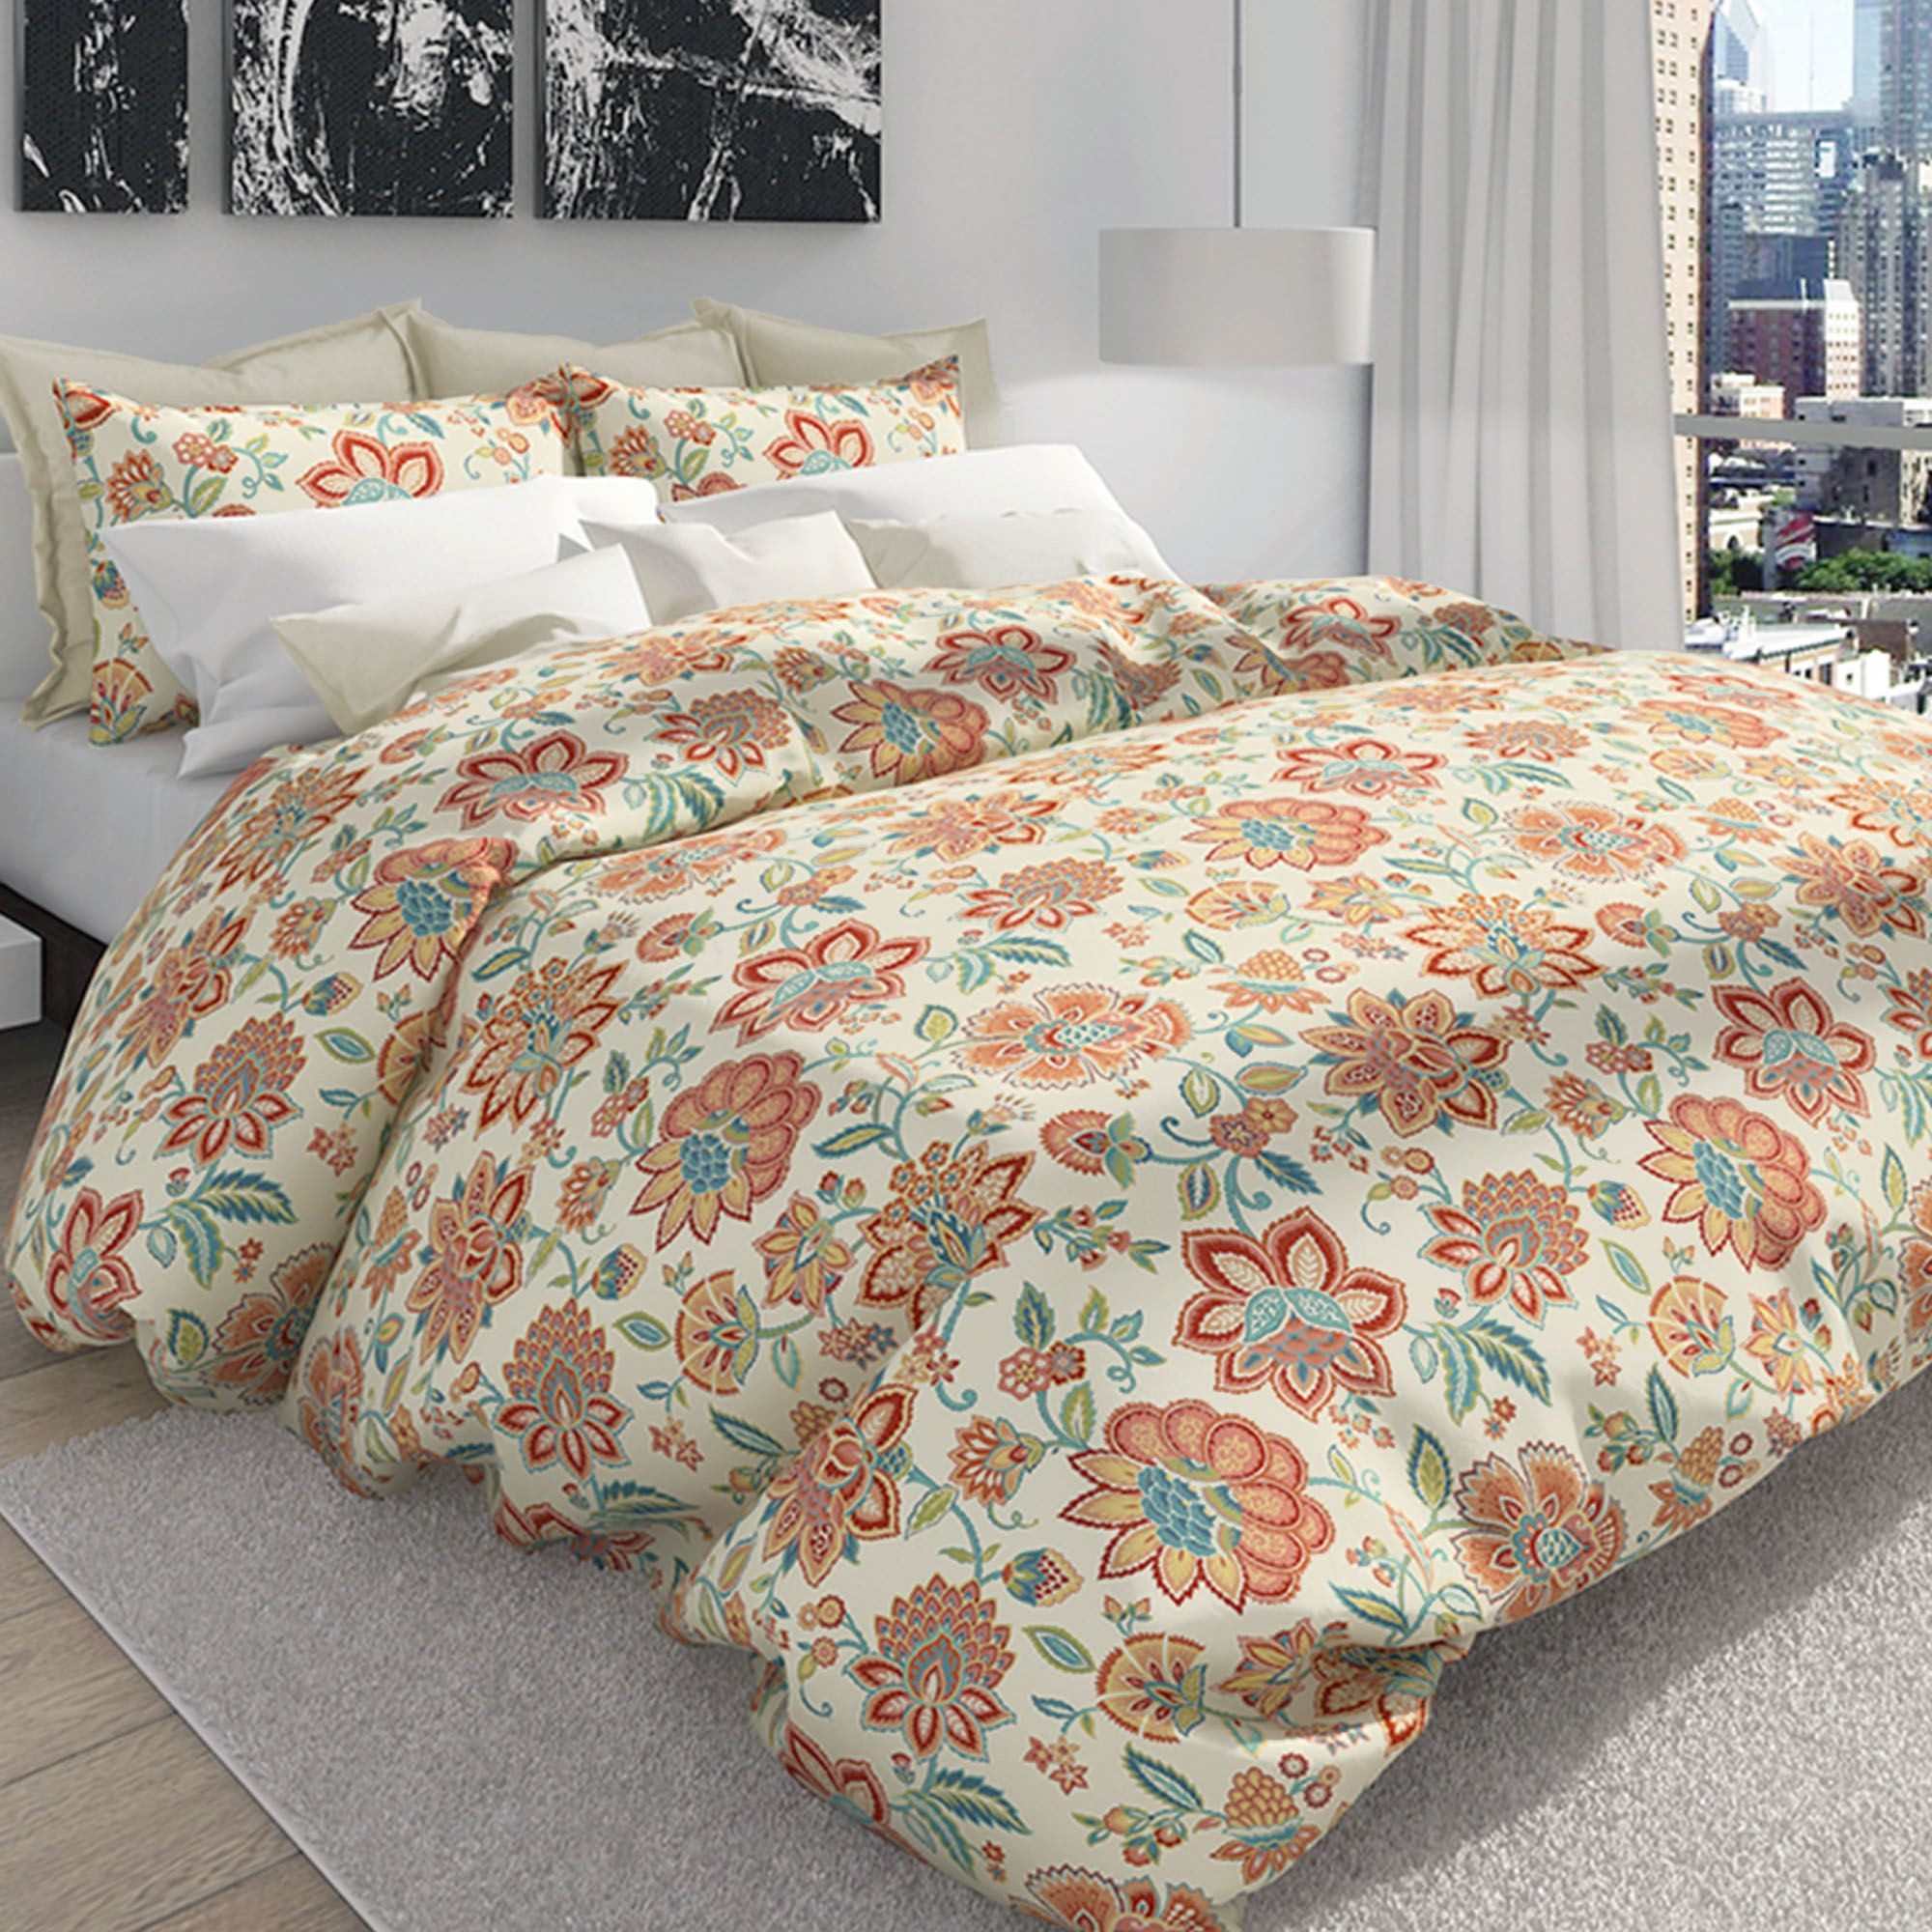 bella jacobean floral duvet cover set melon click to expand. bella melon jacobean floral duvet cover set by colorfly